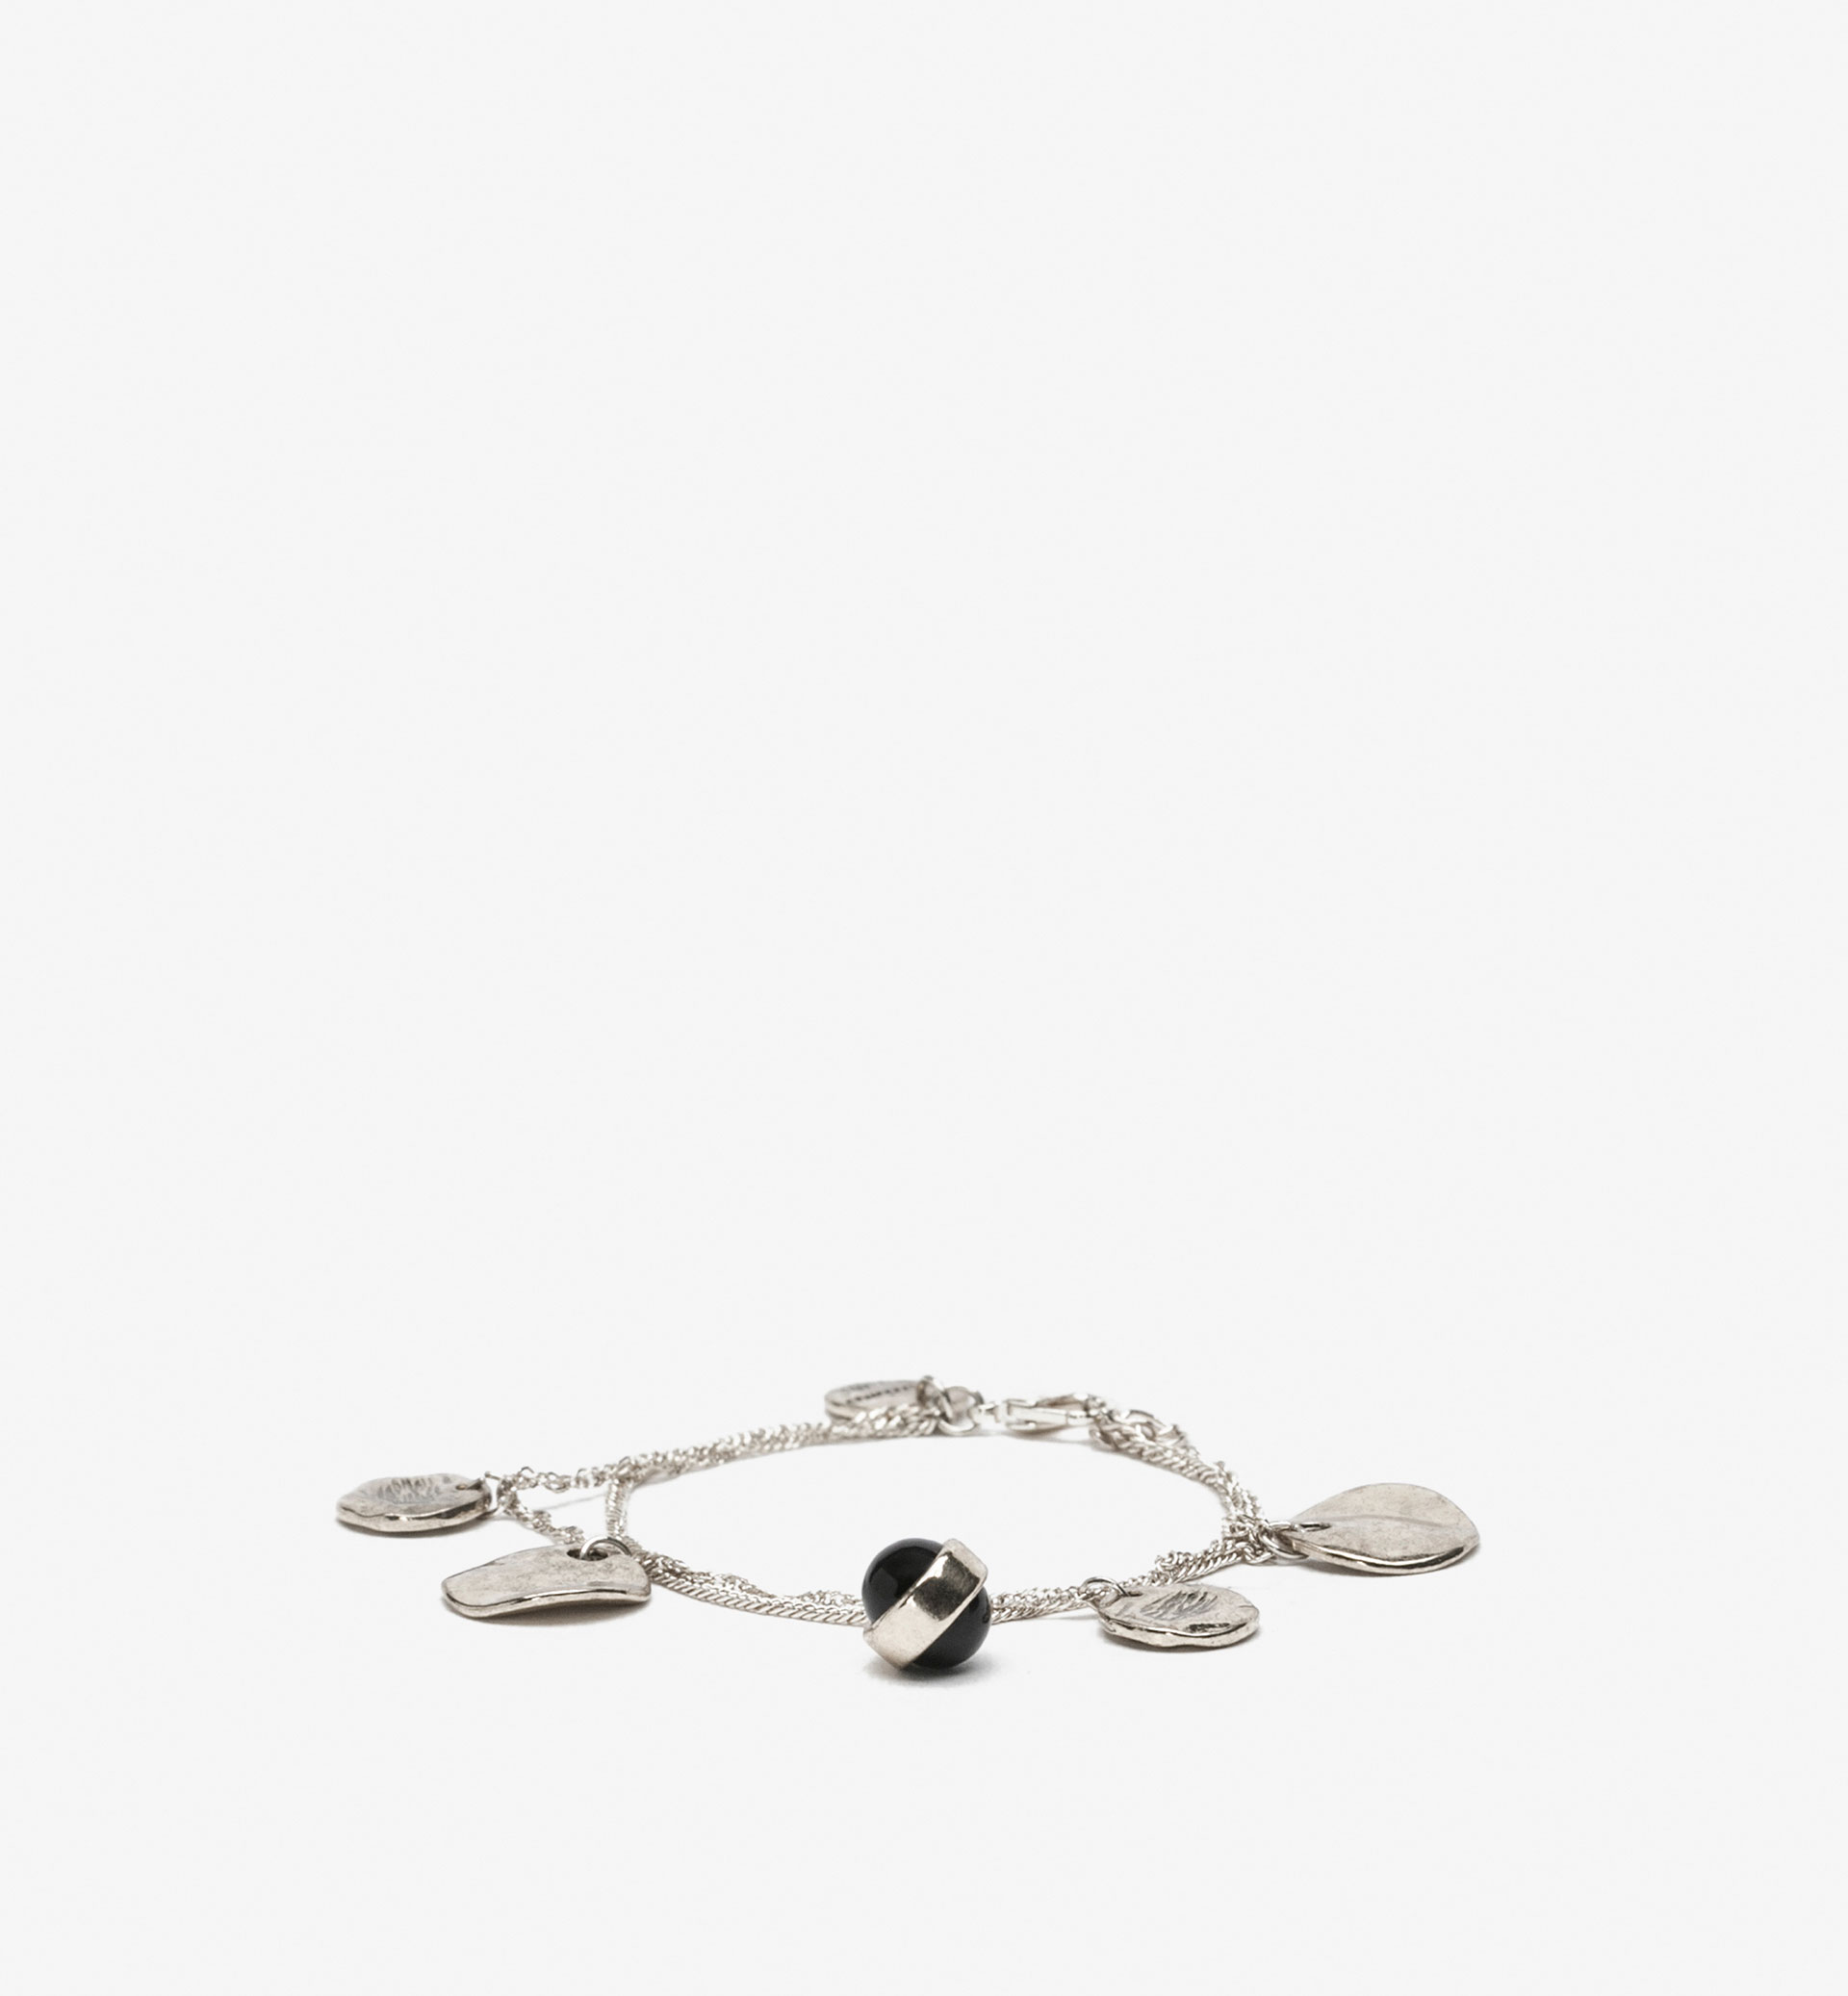 BRACELET WITH PLATES